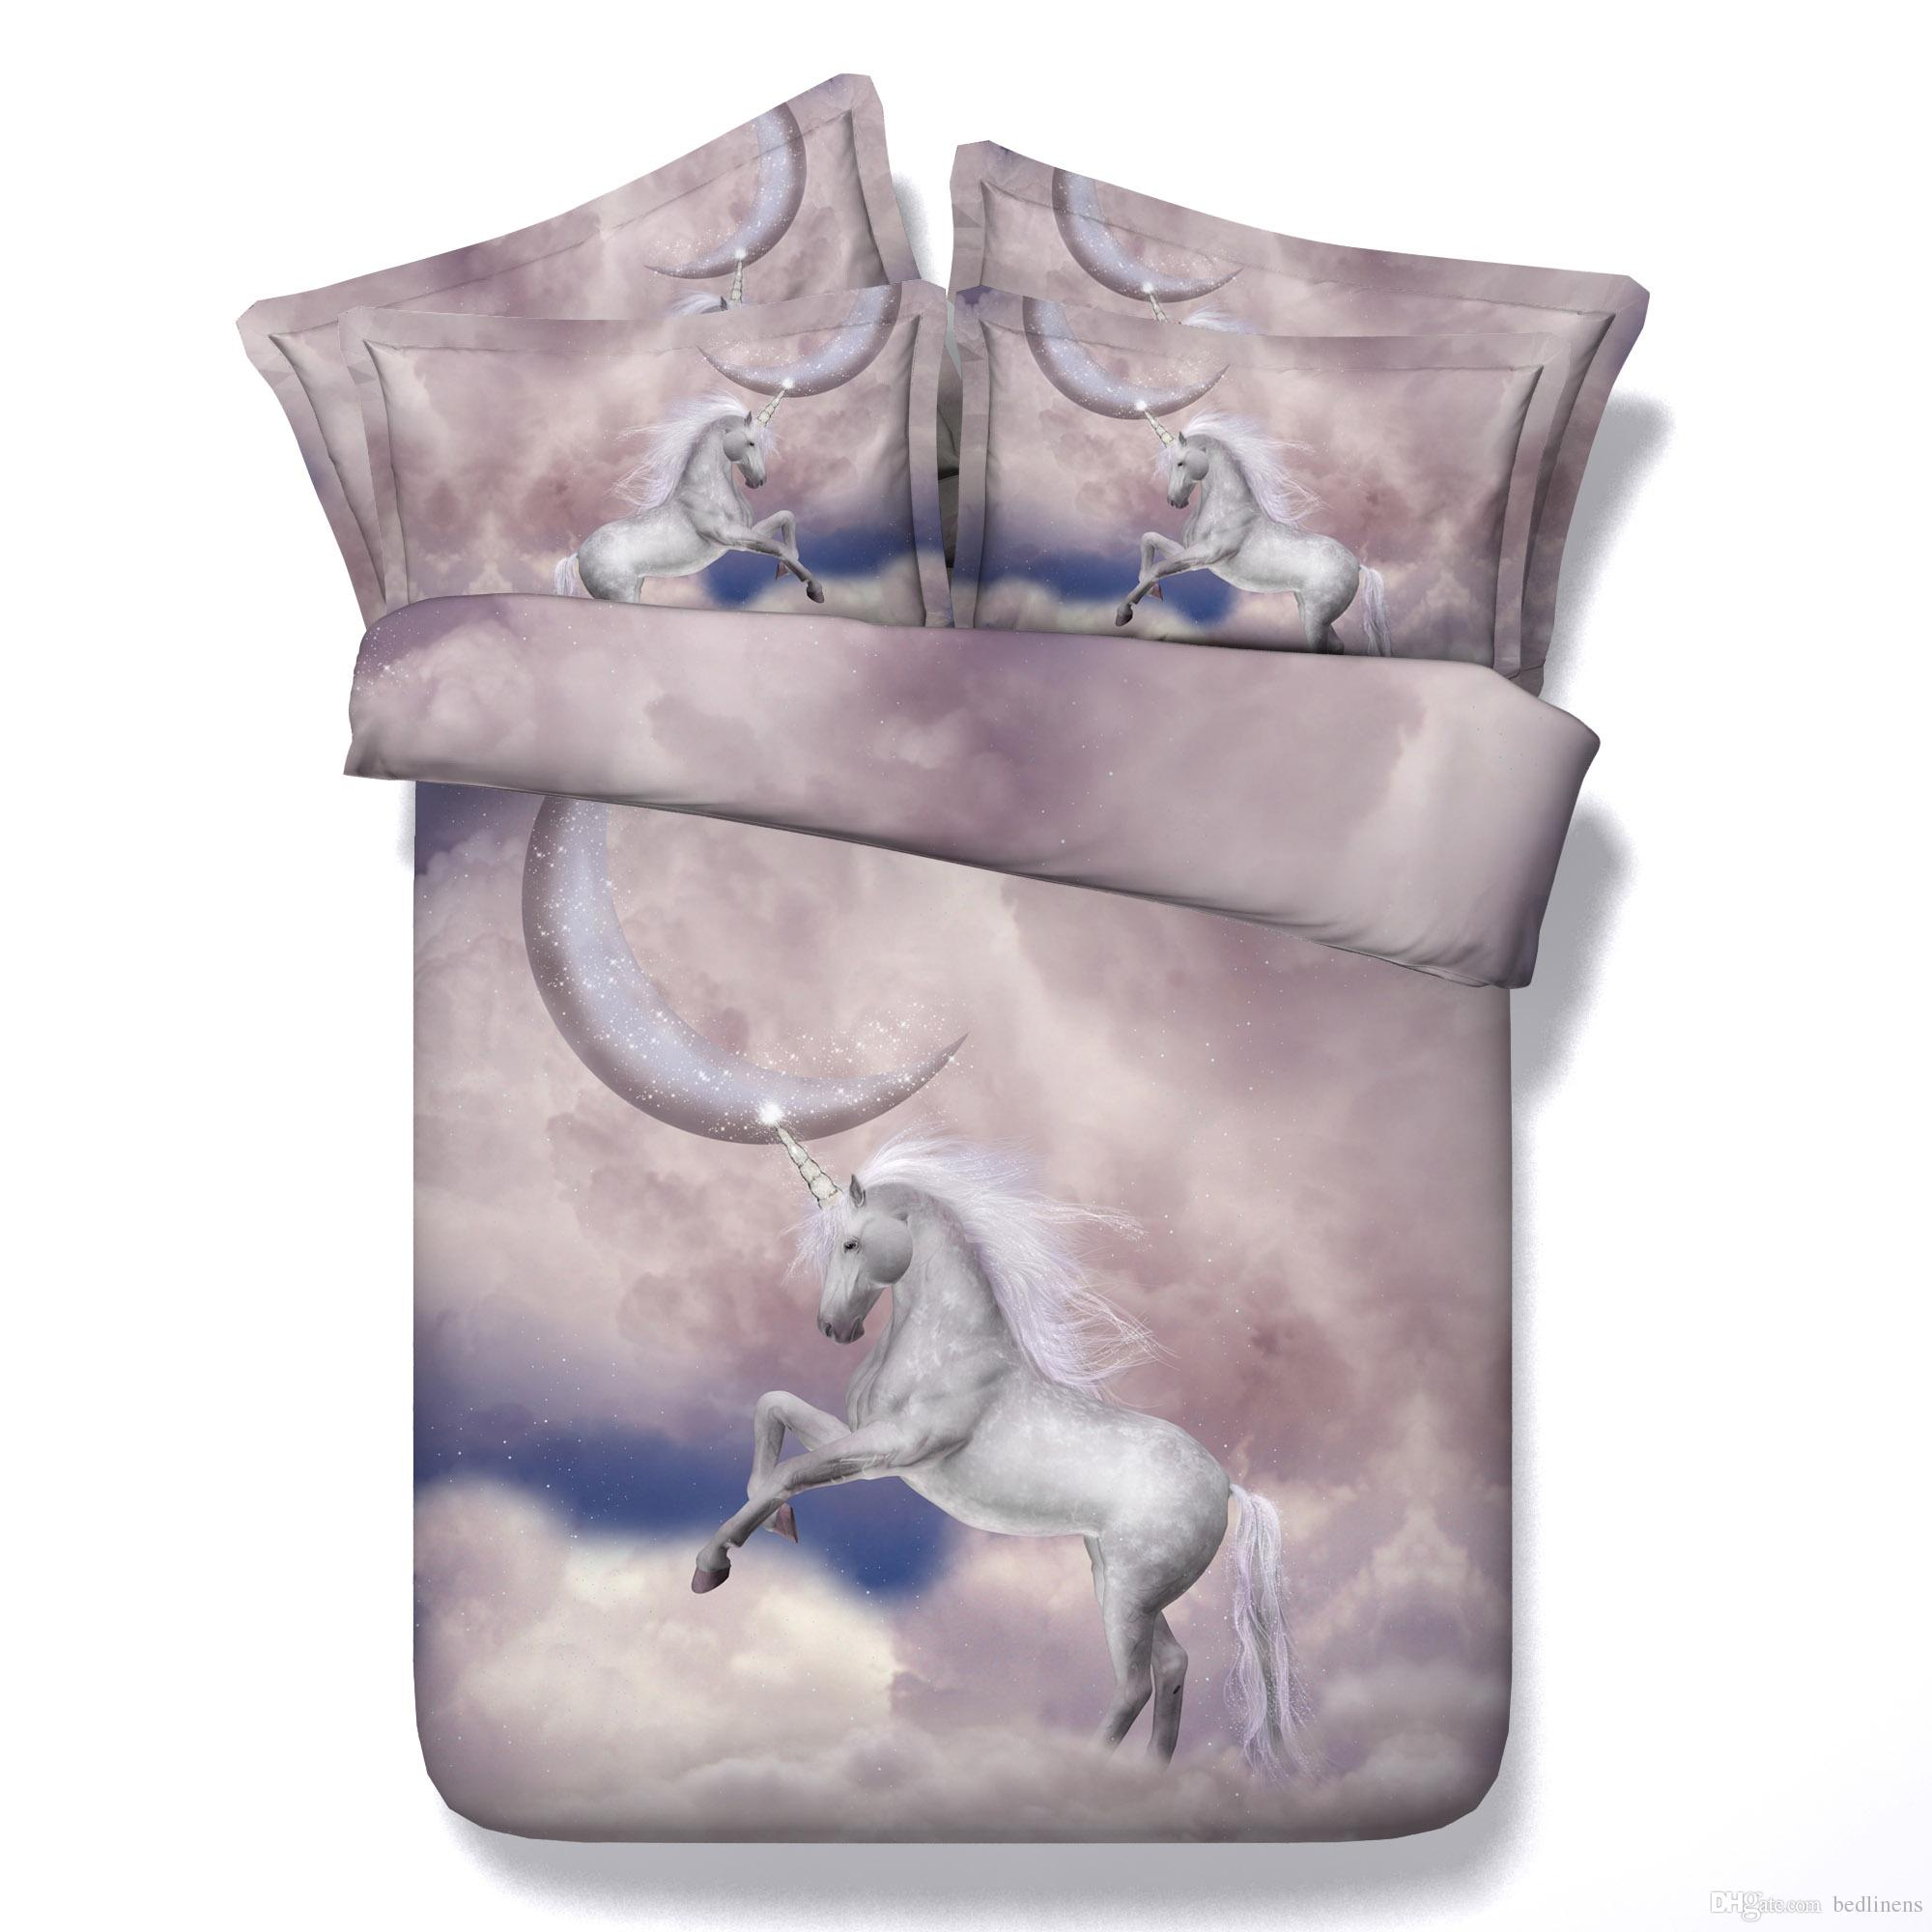 play pinterest shop bedding learn cute cot bed set now grow toddler pin children unicorn be s duvet magical